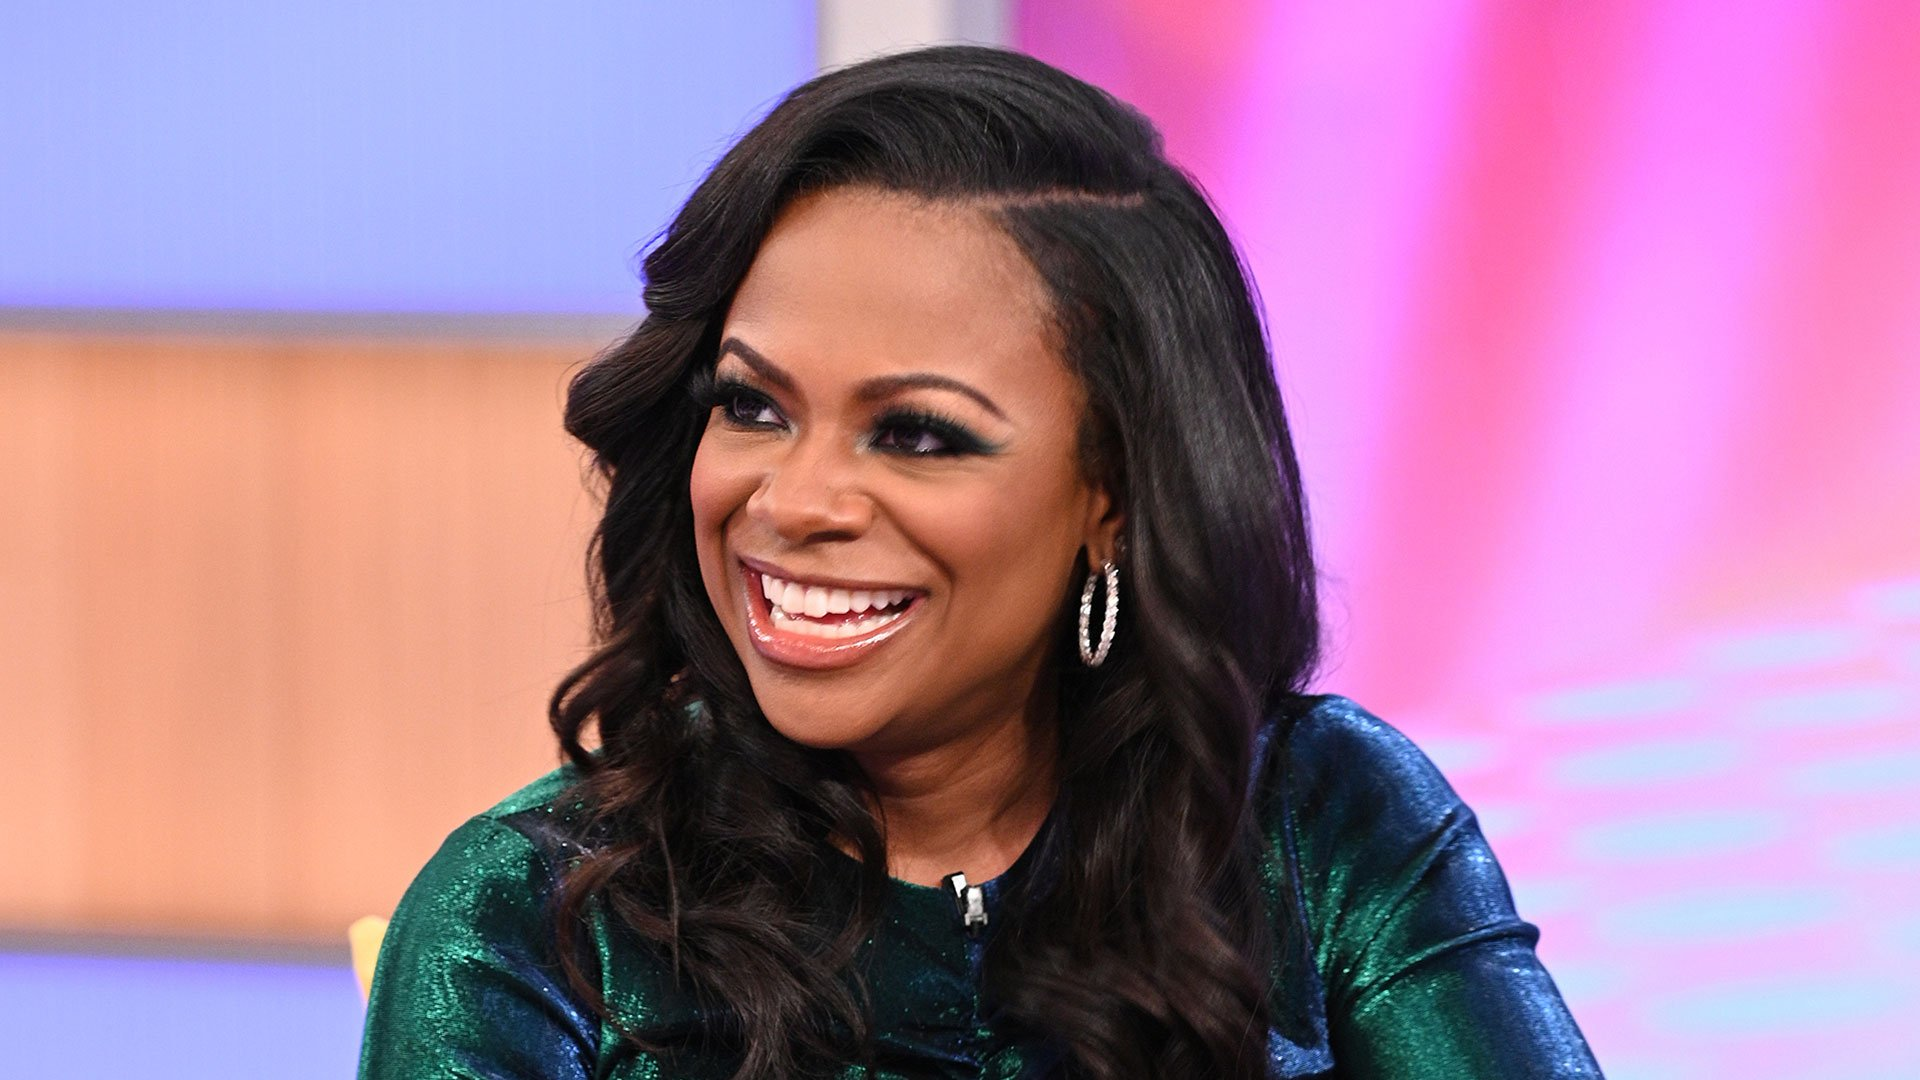 Kandi Burruss Drops A New Episode Of Trending Topics On Her YouTube Channel – See It Here